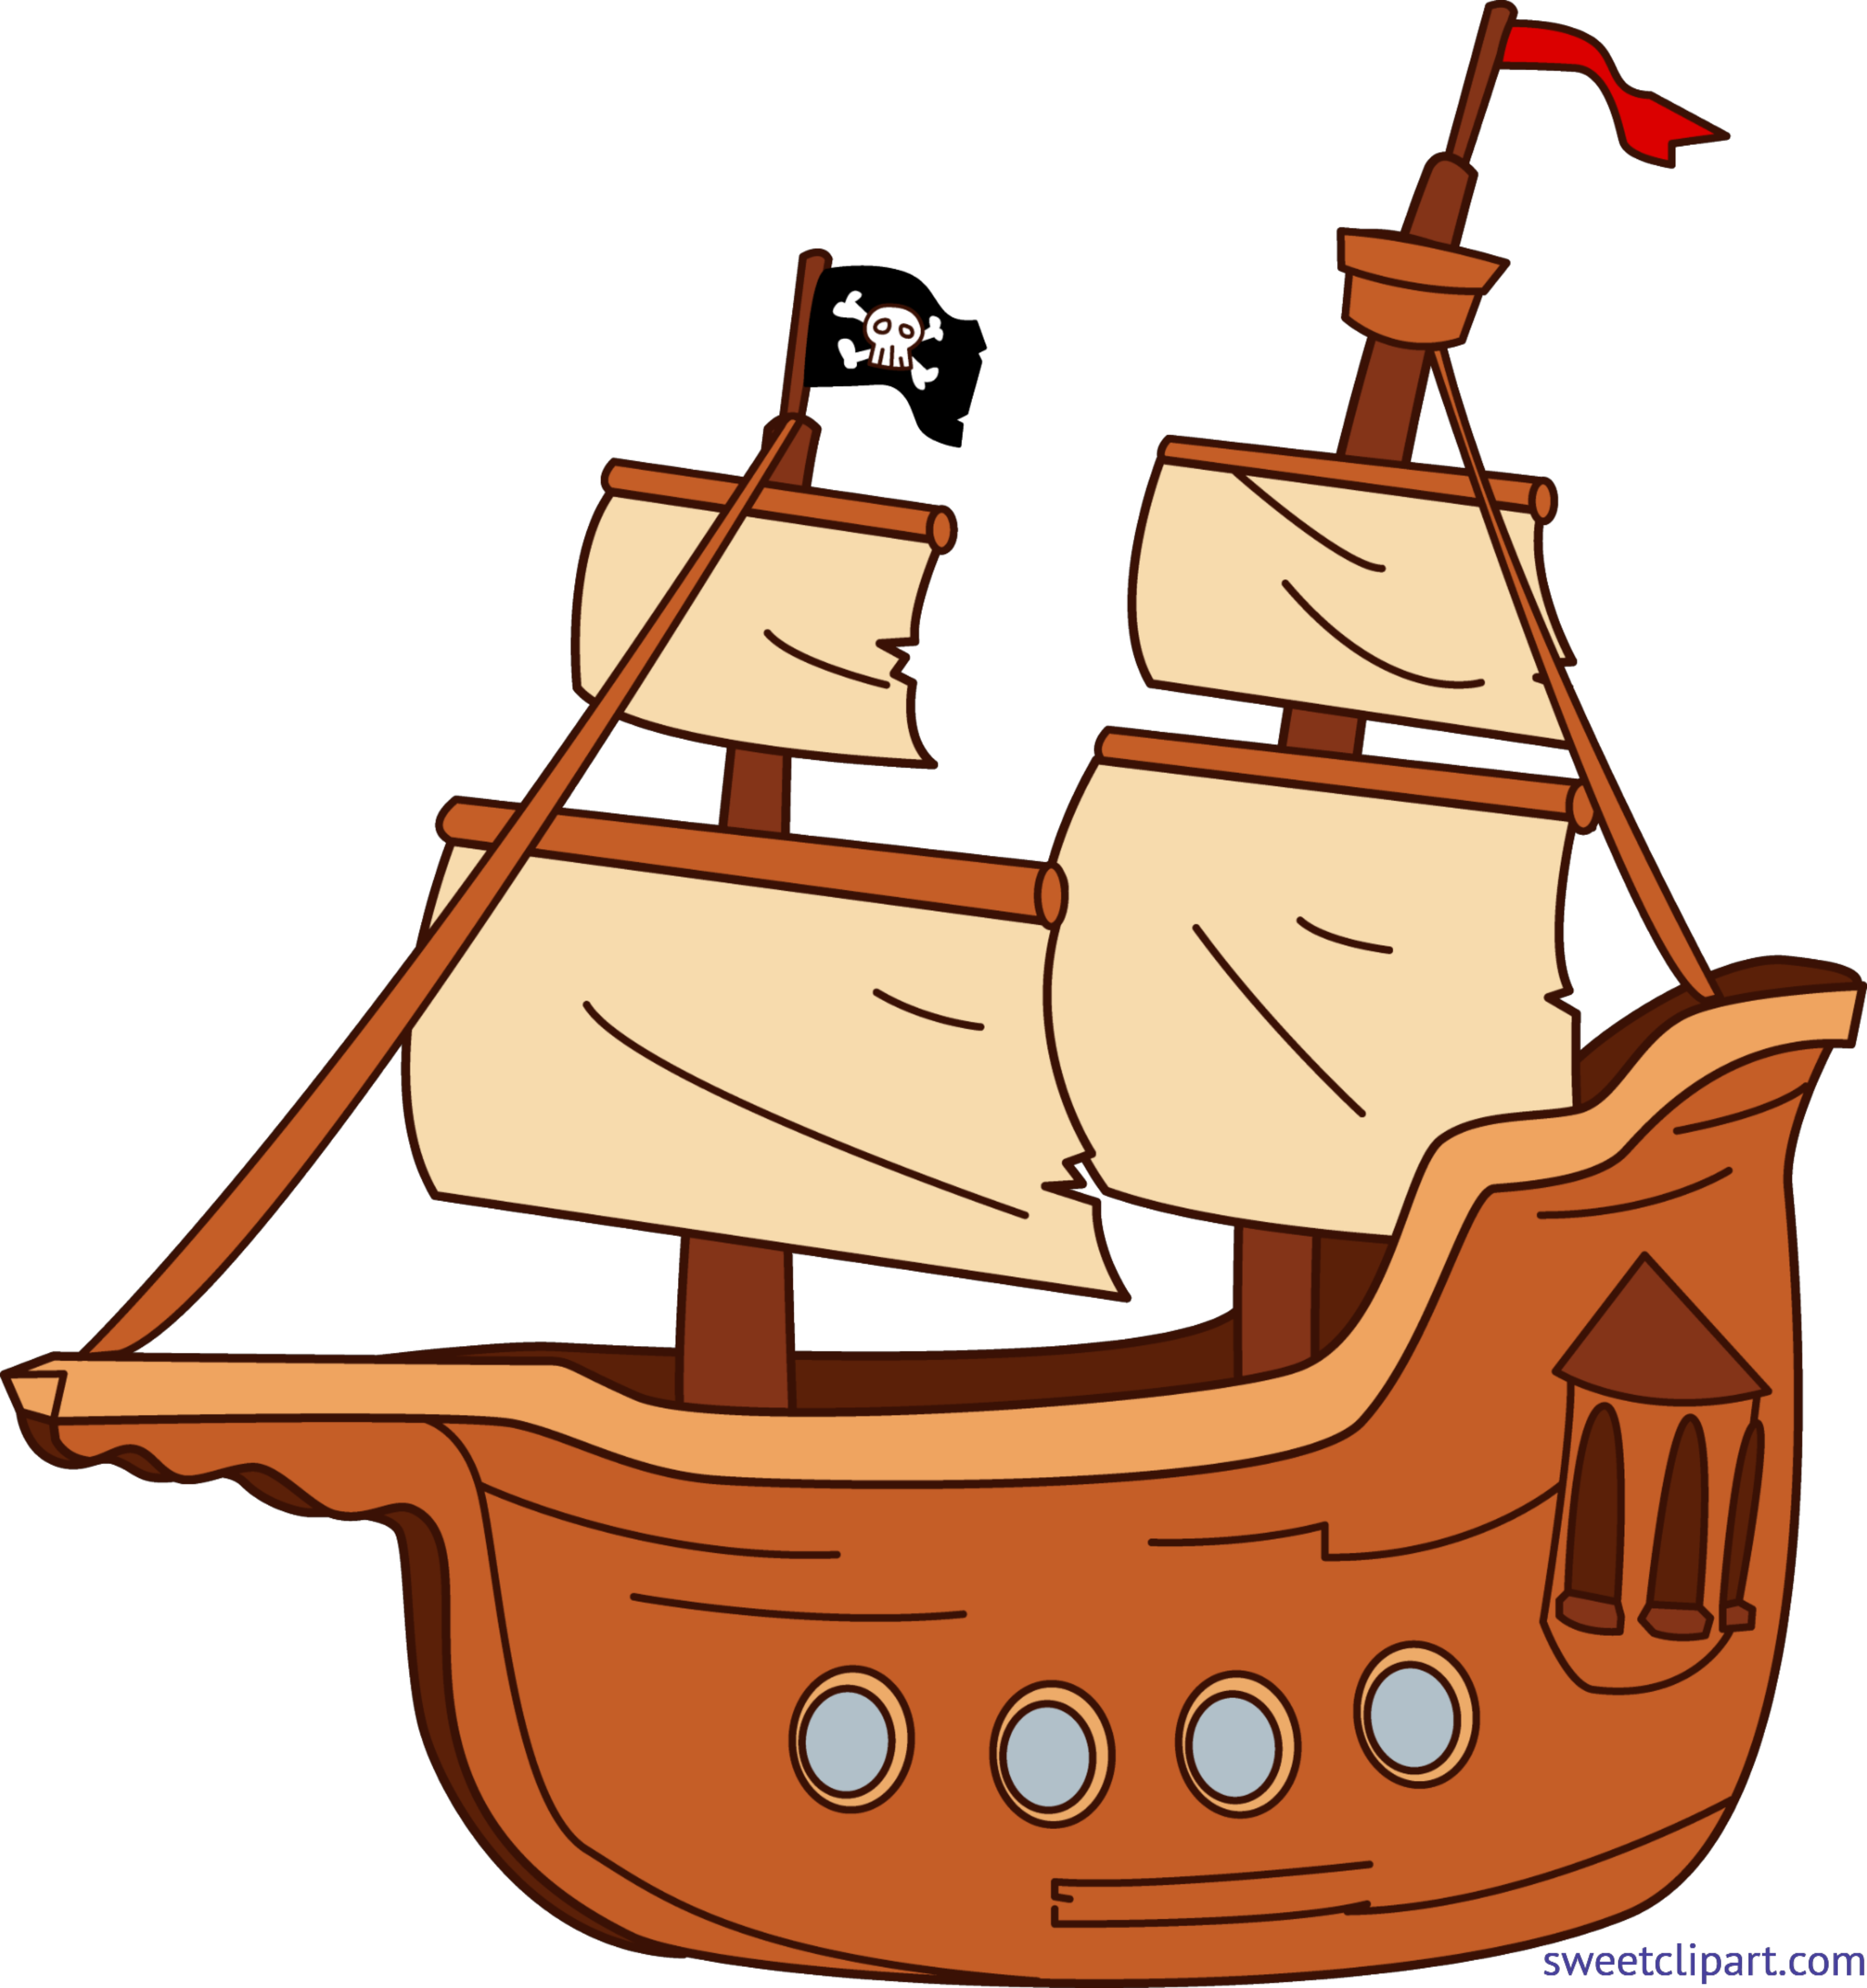 Pirate ship images clip. Pirates clipart classroom